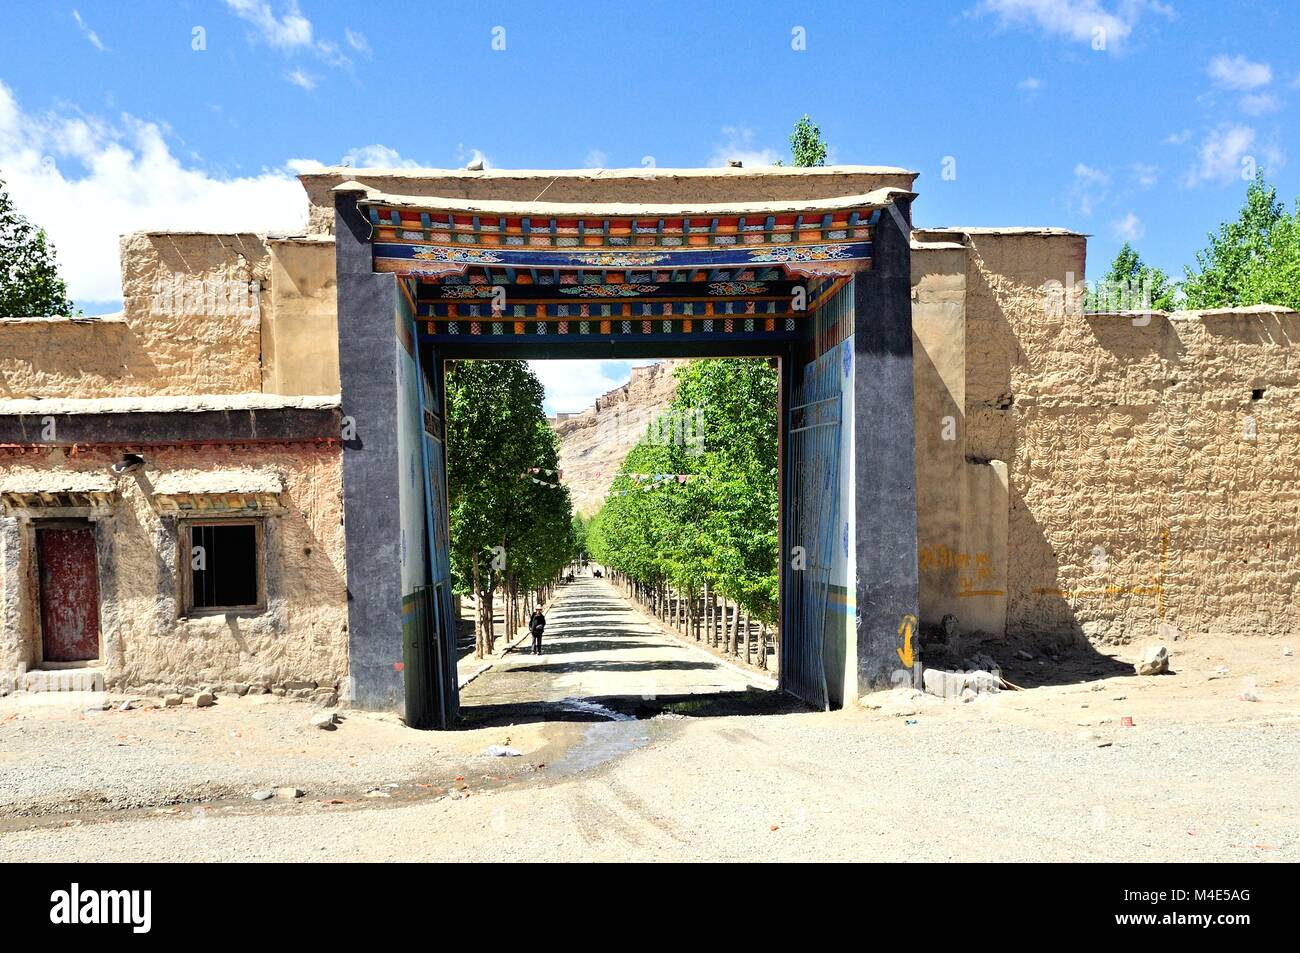 City gate in the city of Gyantse in Tibet China - Stock Image